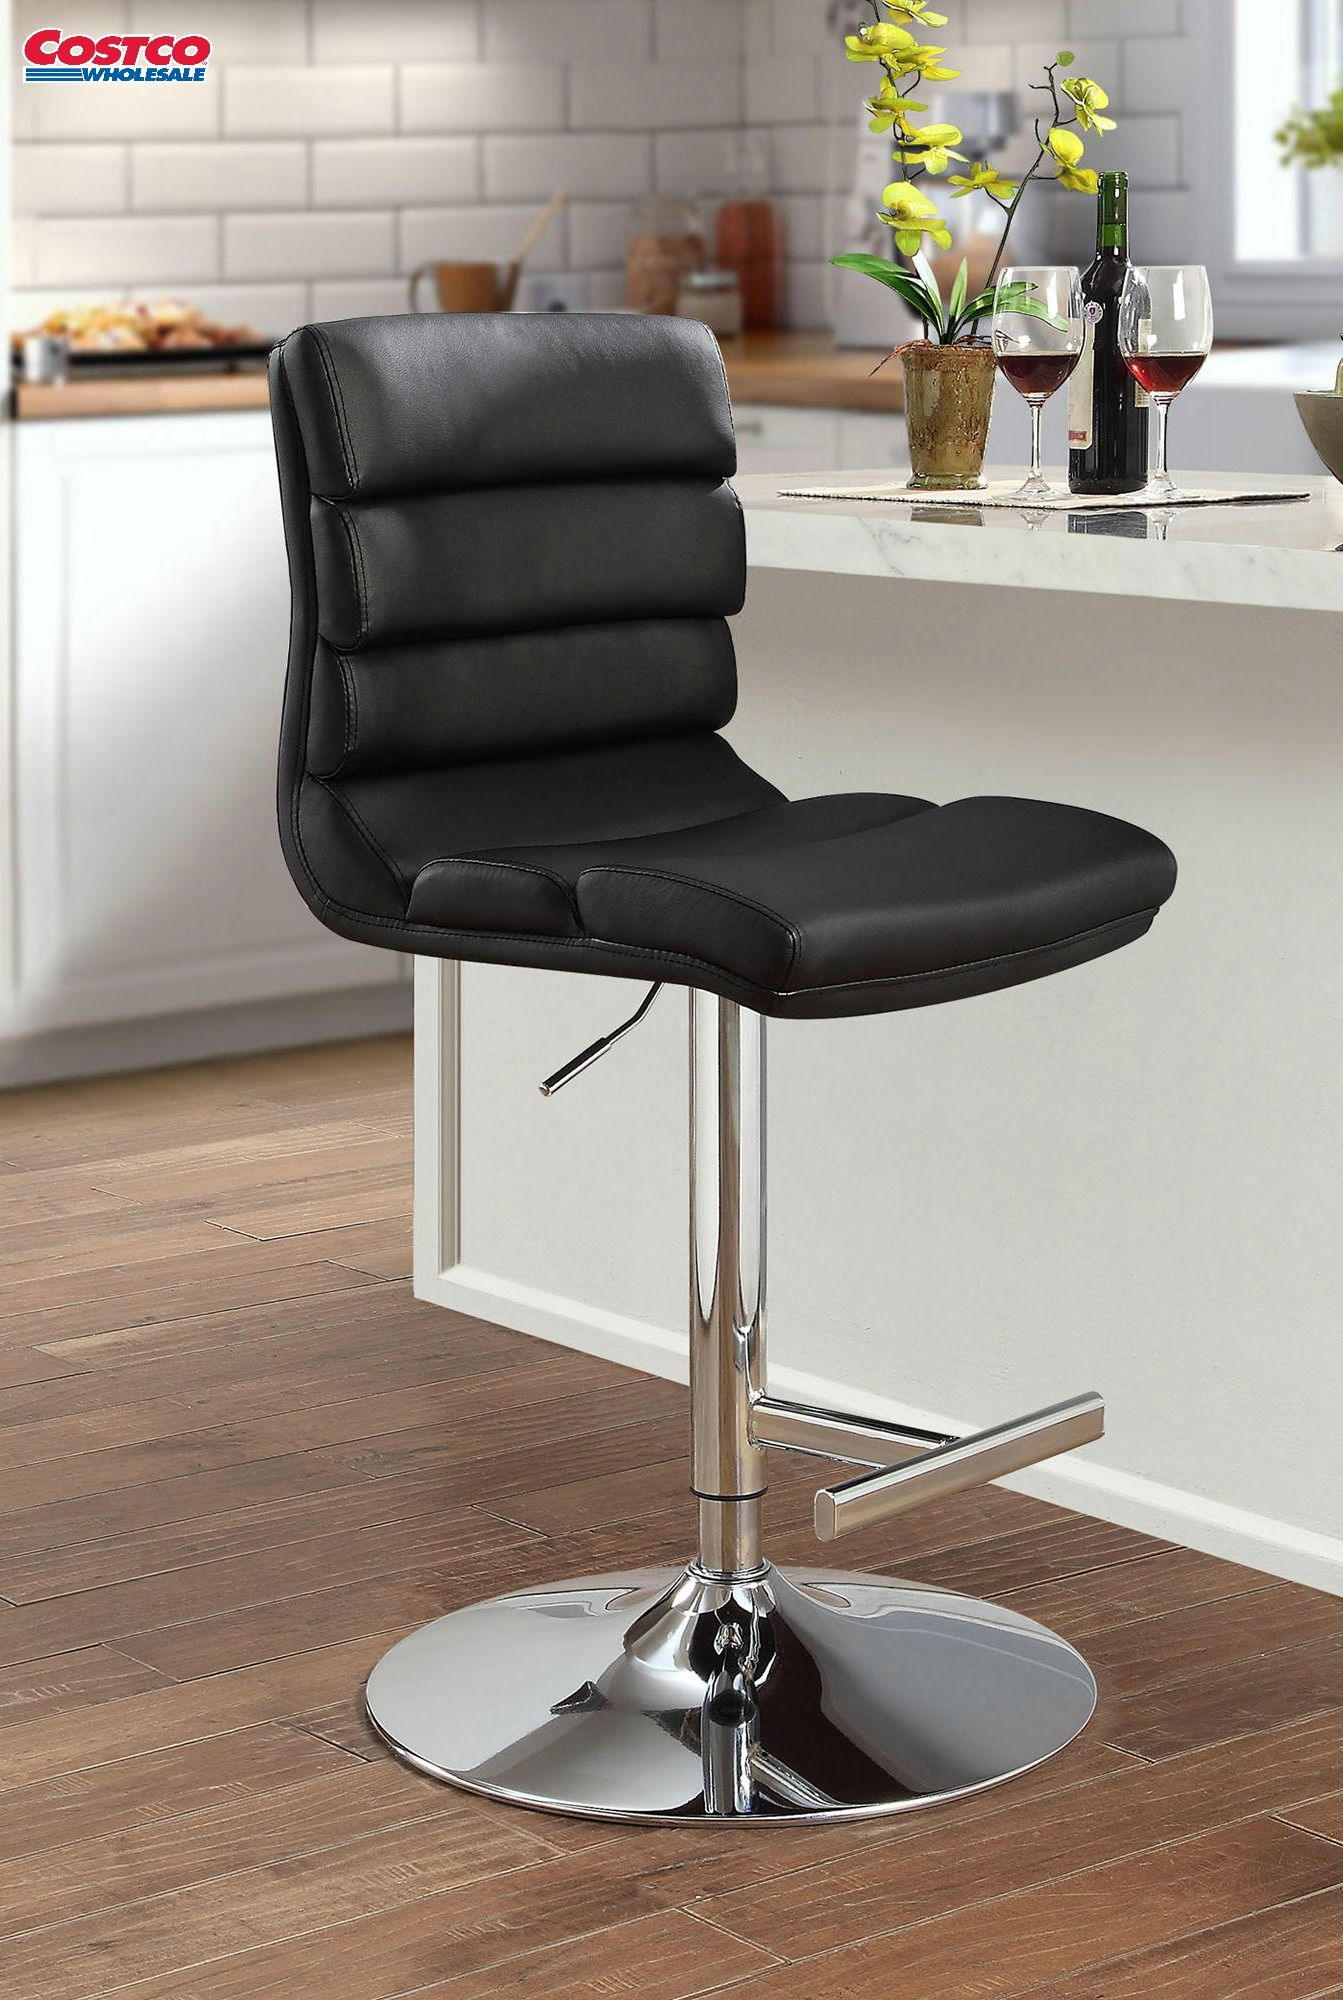 The Contemporary Solara Adjustable Bar Stool Features A Black Bonded